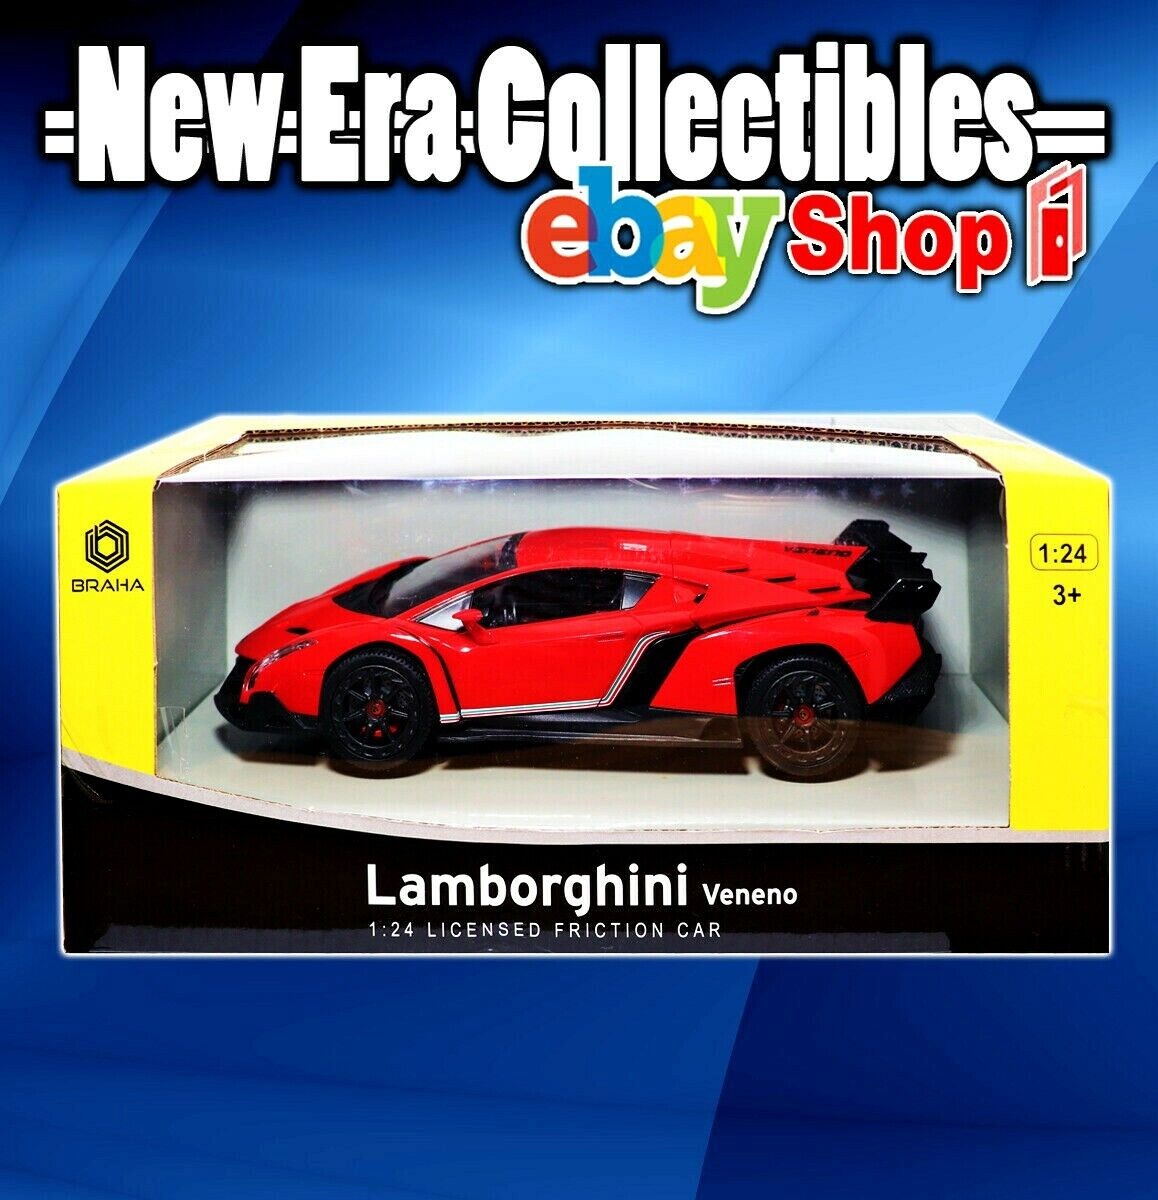 Braha Lamborghini Sesto Elemento 1 24 Scale Licensed Friction Car Red New Diecast Toy Vehicles Cars Trucks Vans